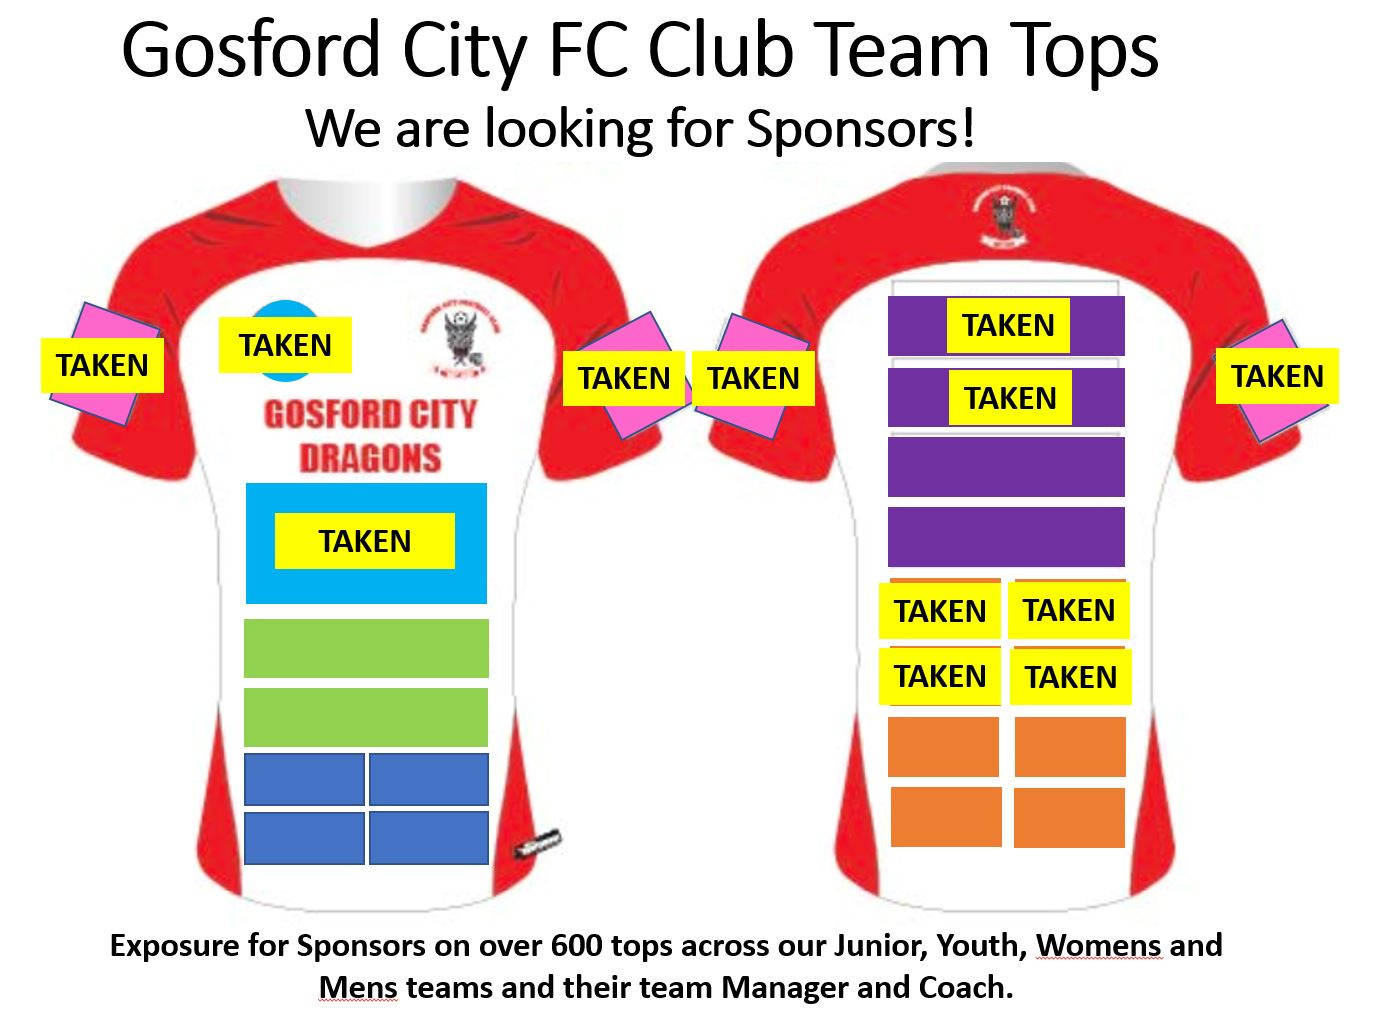 Club Team Tops looking for sponsors FB promo